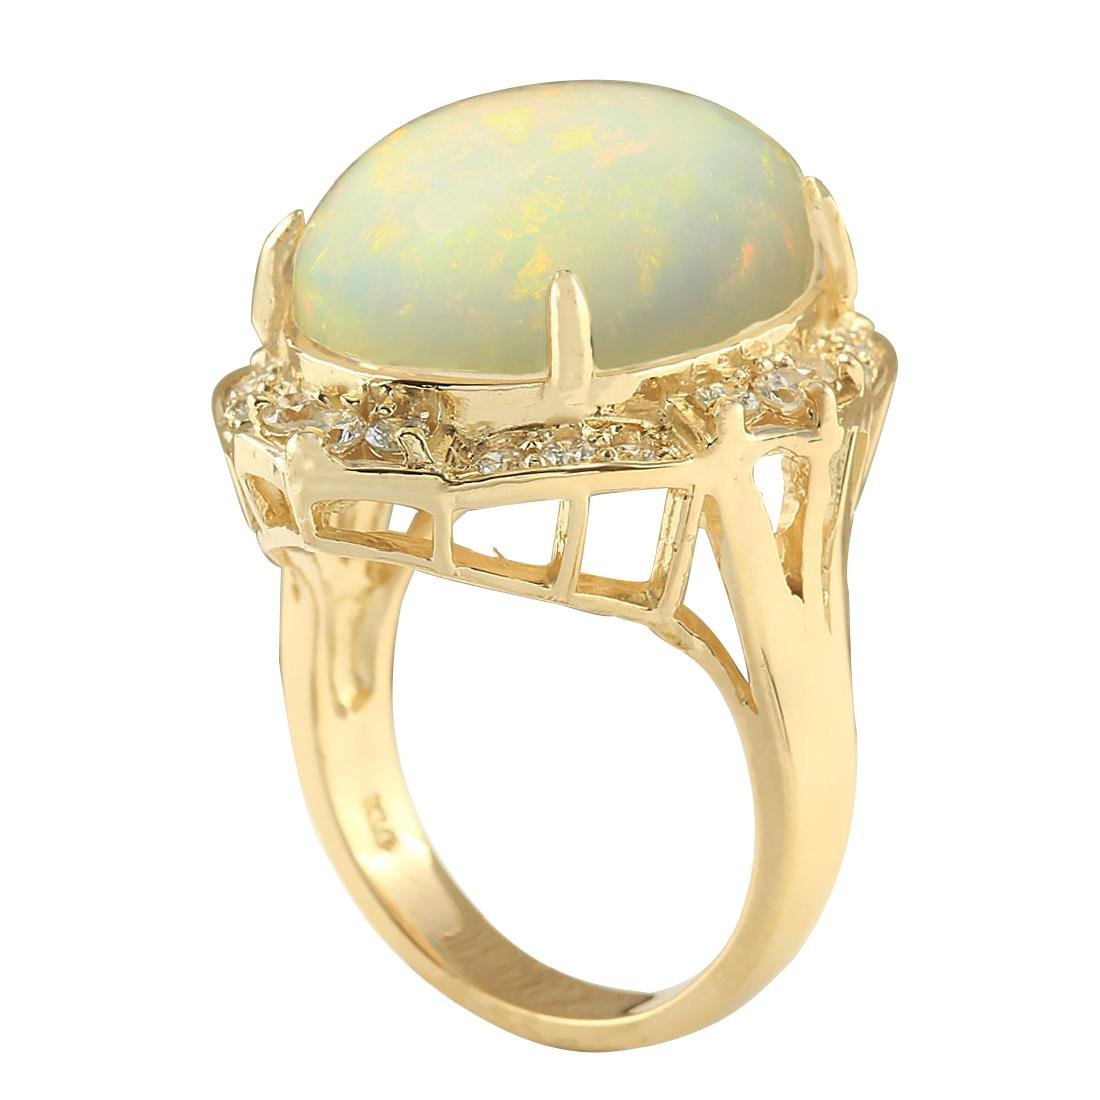 10.50CTW Natural Opal And Diamond Ring In 18K Yellow - 3